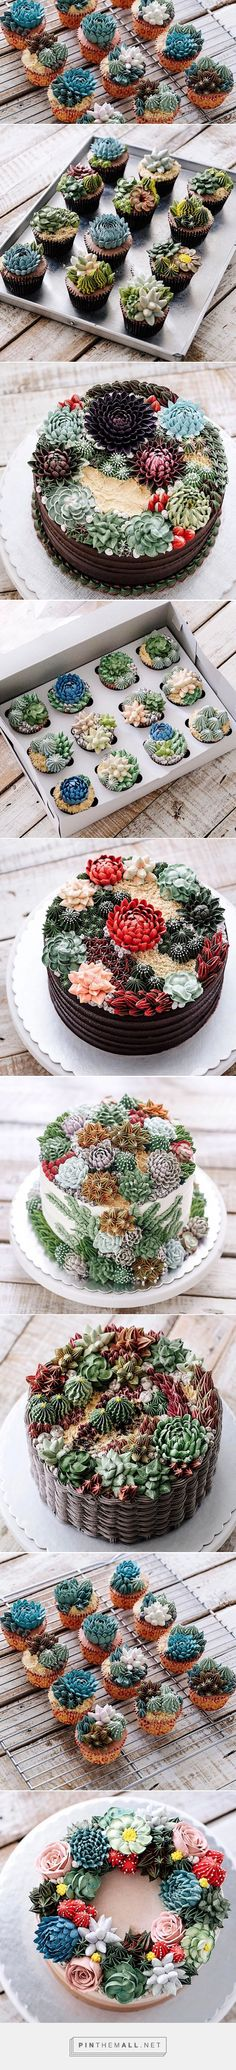 Succulent Cakes By Ivenoven Will Make Every Succulent Lover's Mouth Water | Bored Panda - created on 2017-04-02 21:09:14